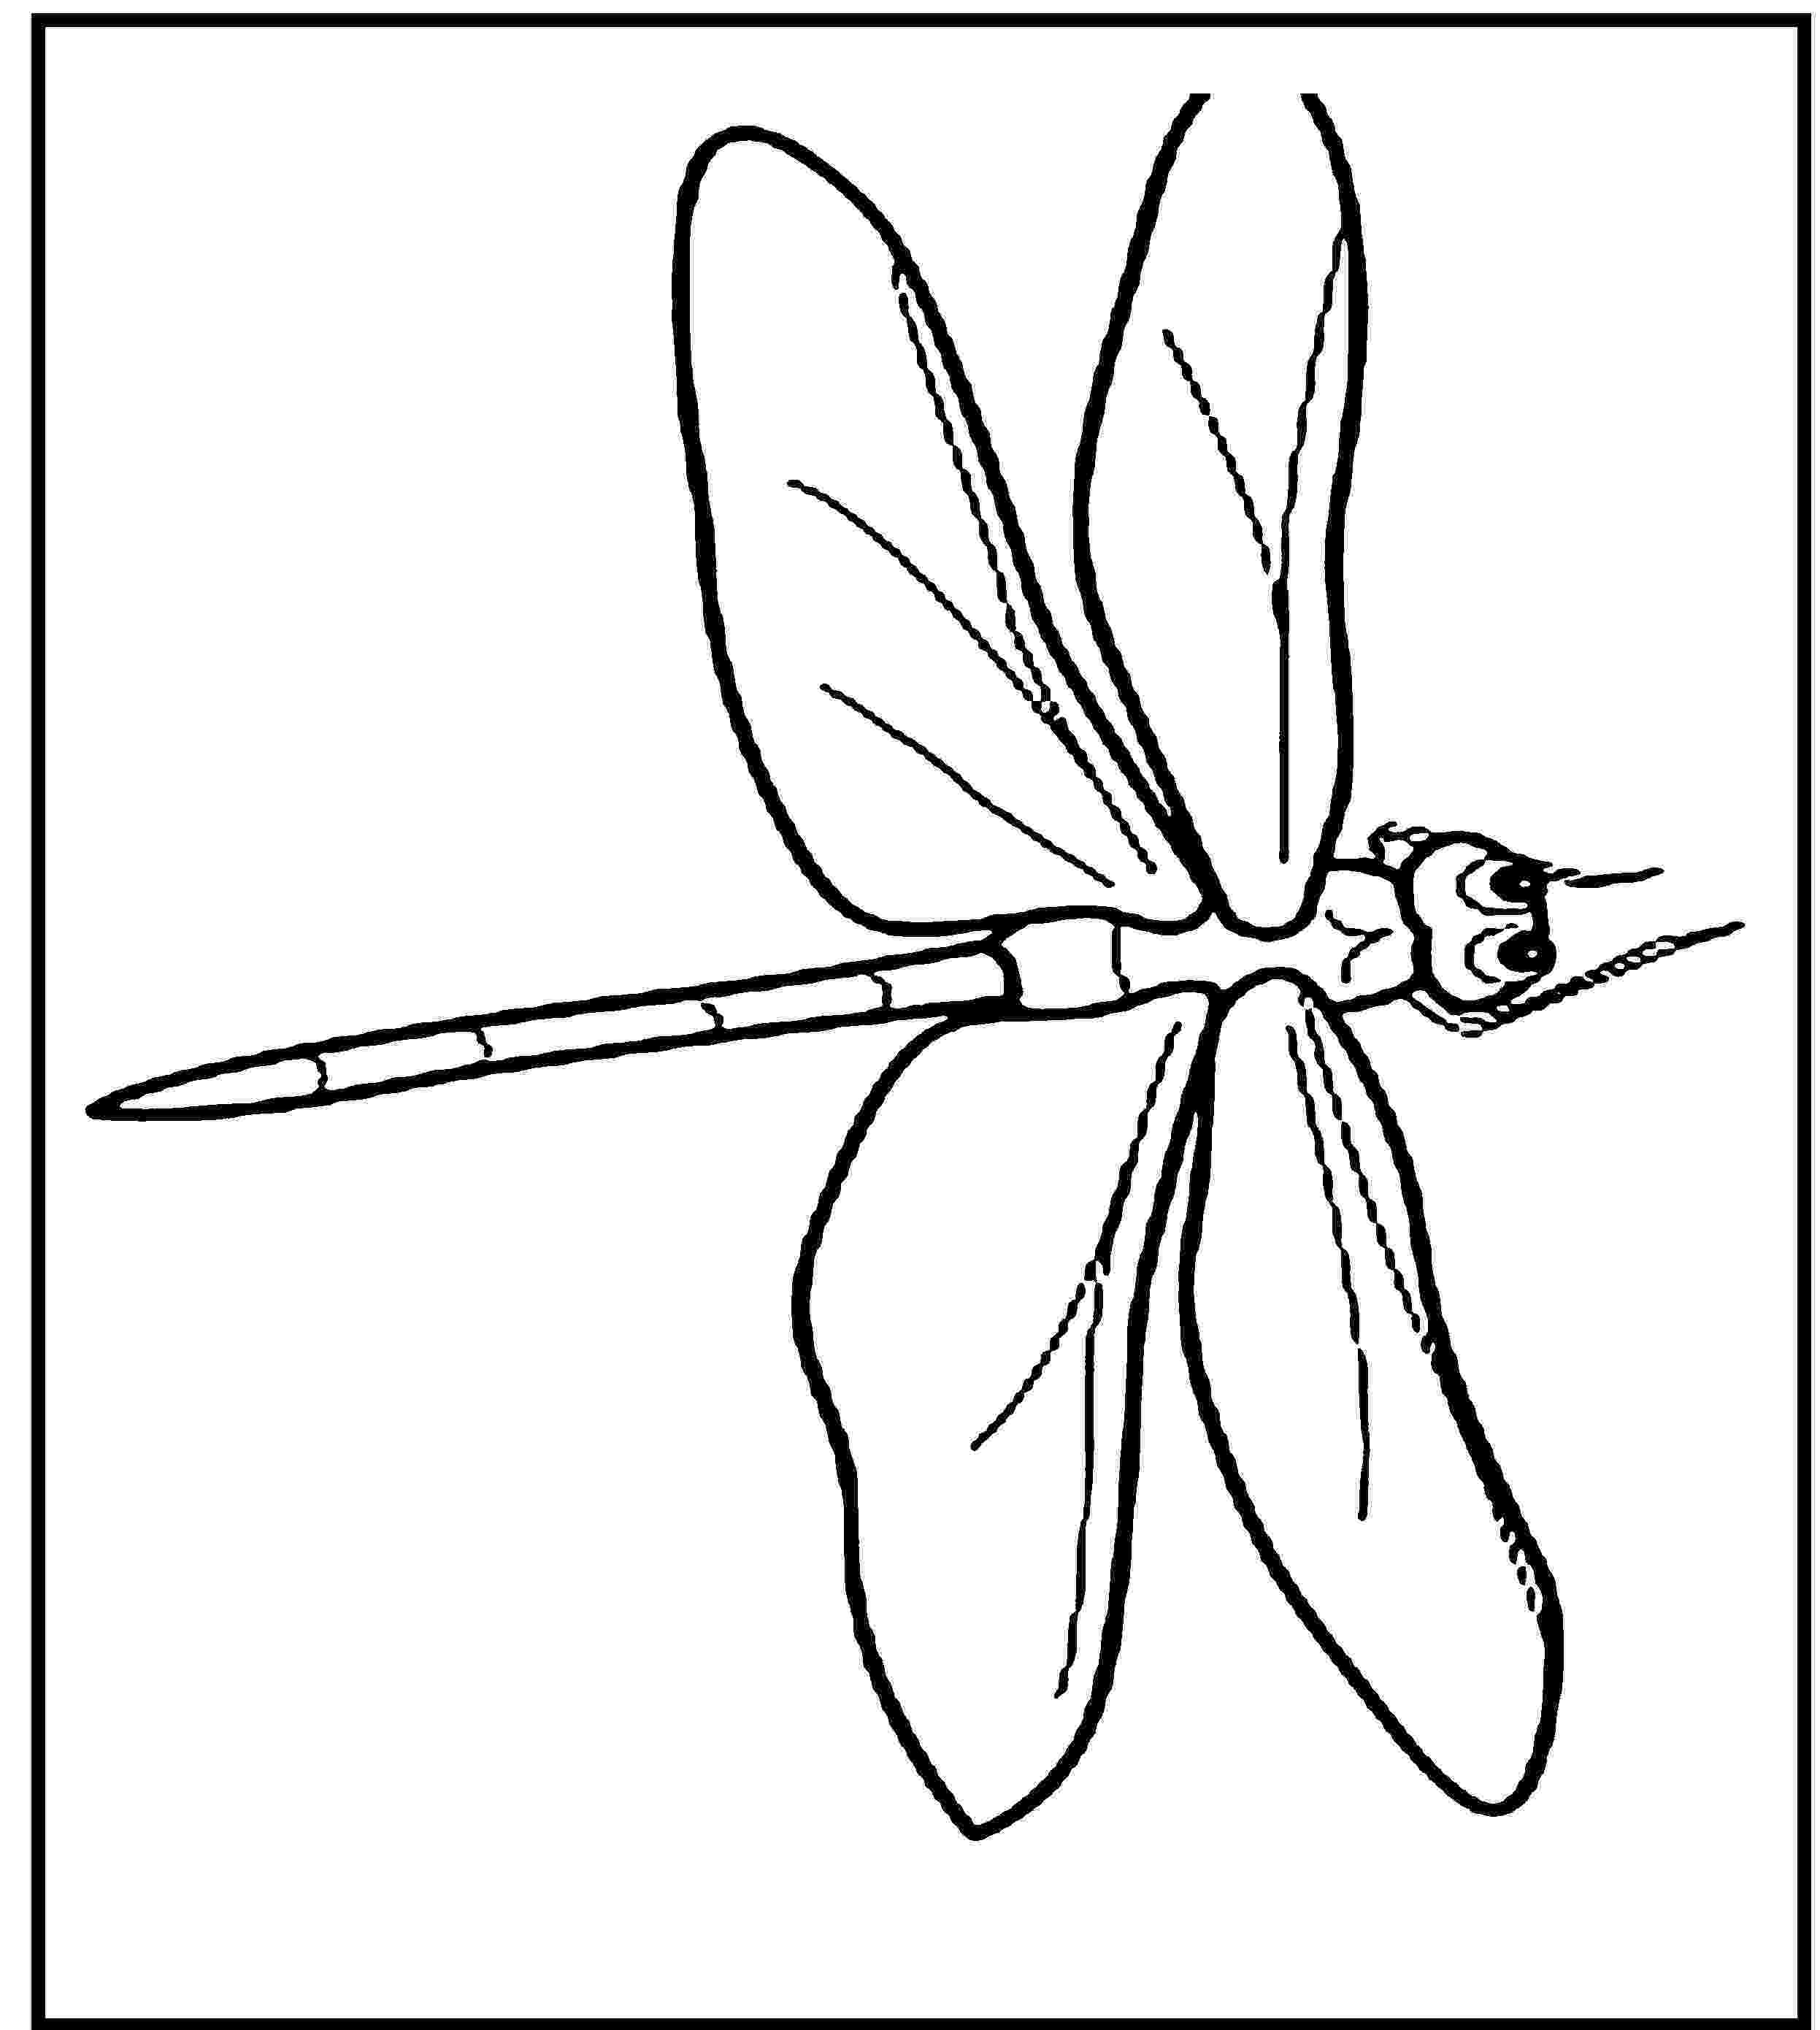 dragonfly coloring free printable dragonfly coloring pages for kids animal dragonfly coloring 1 1